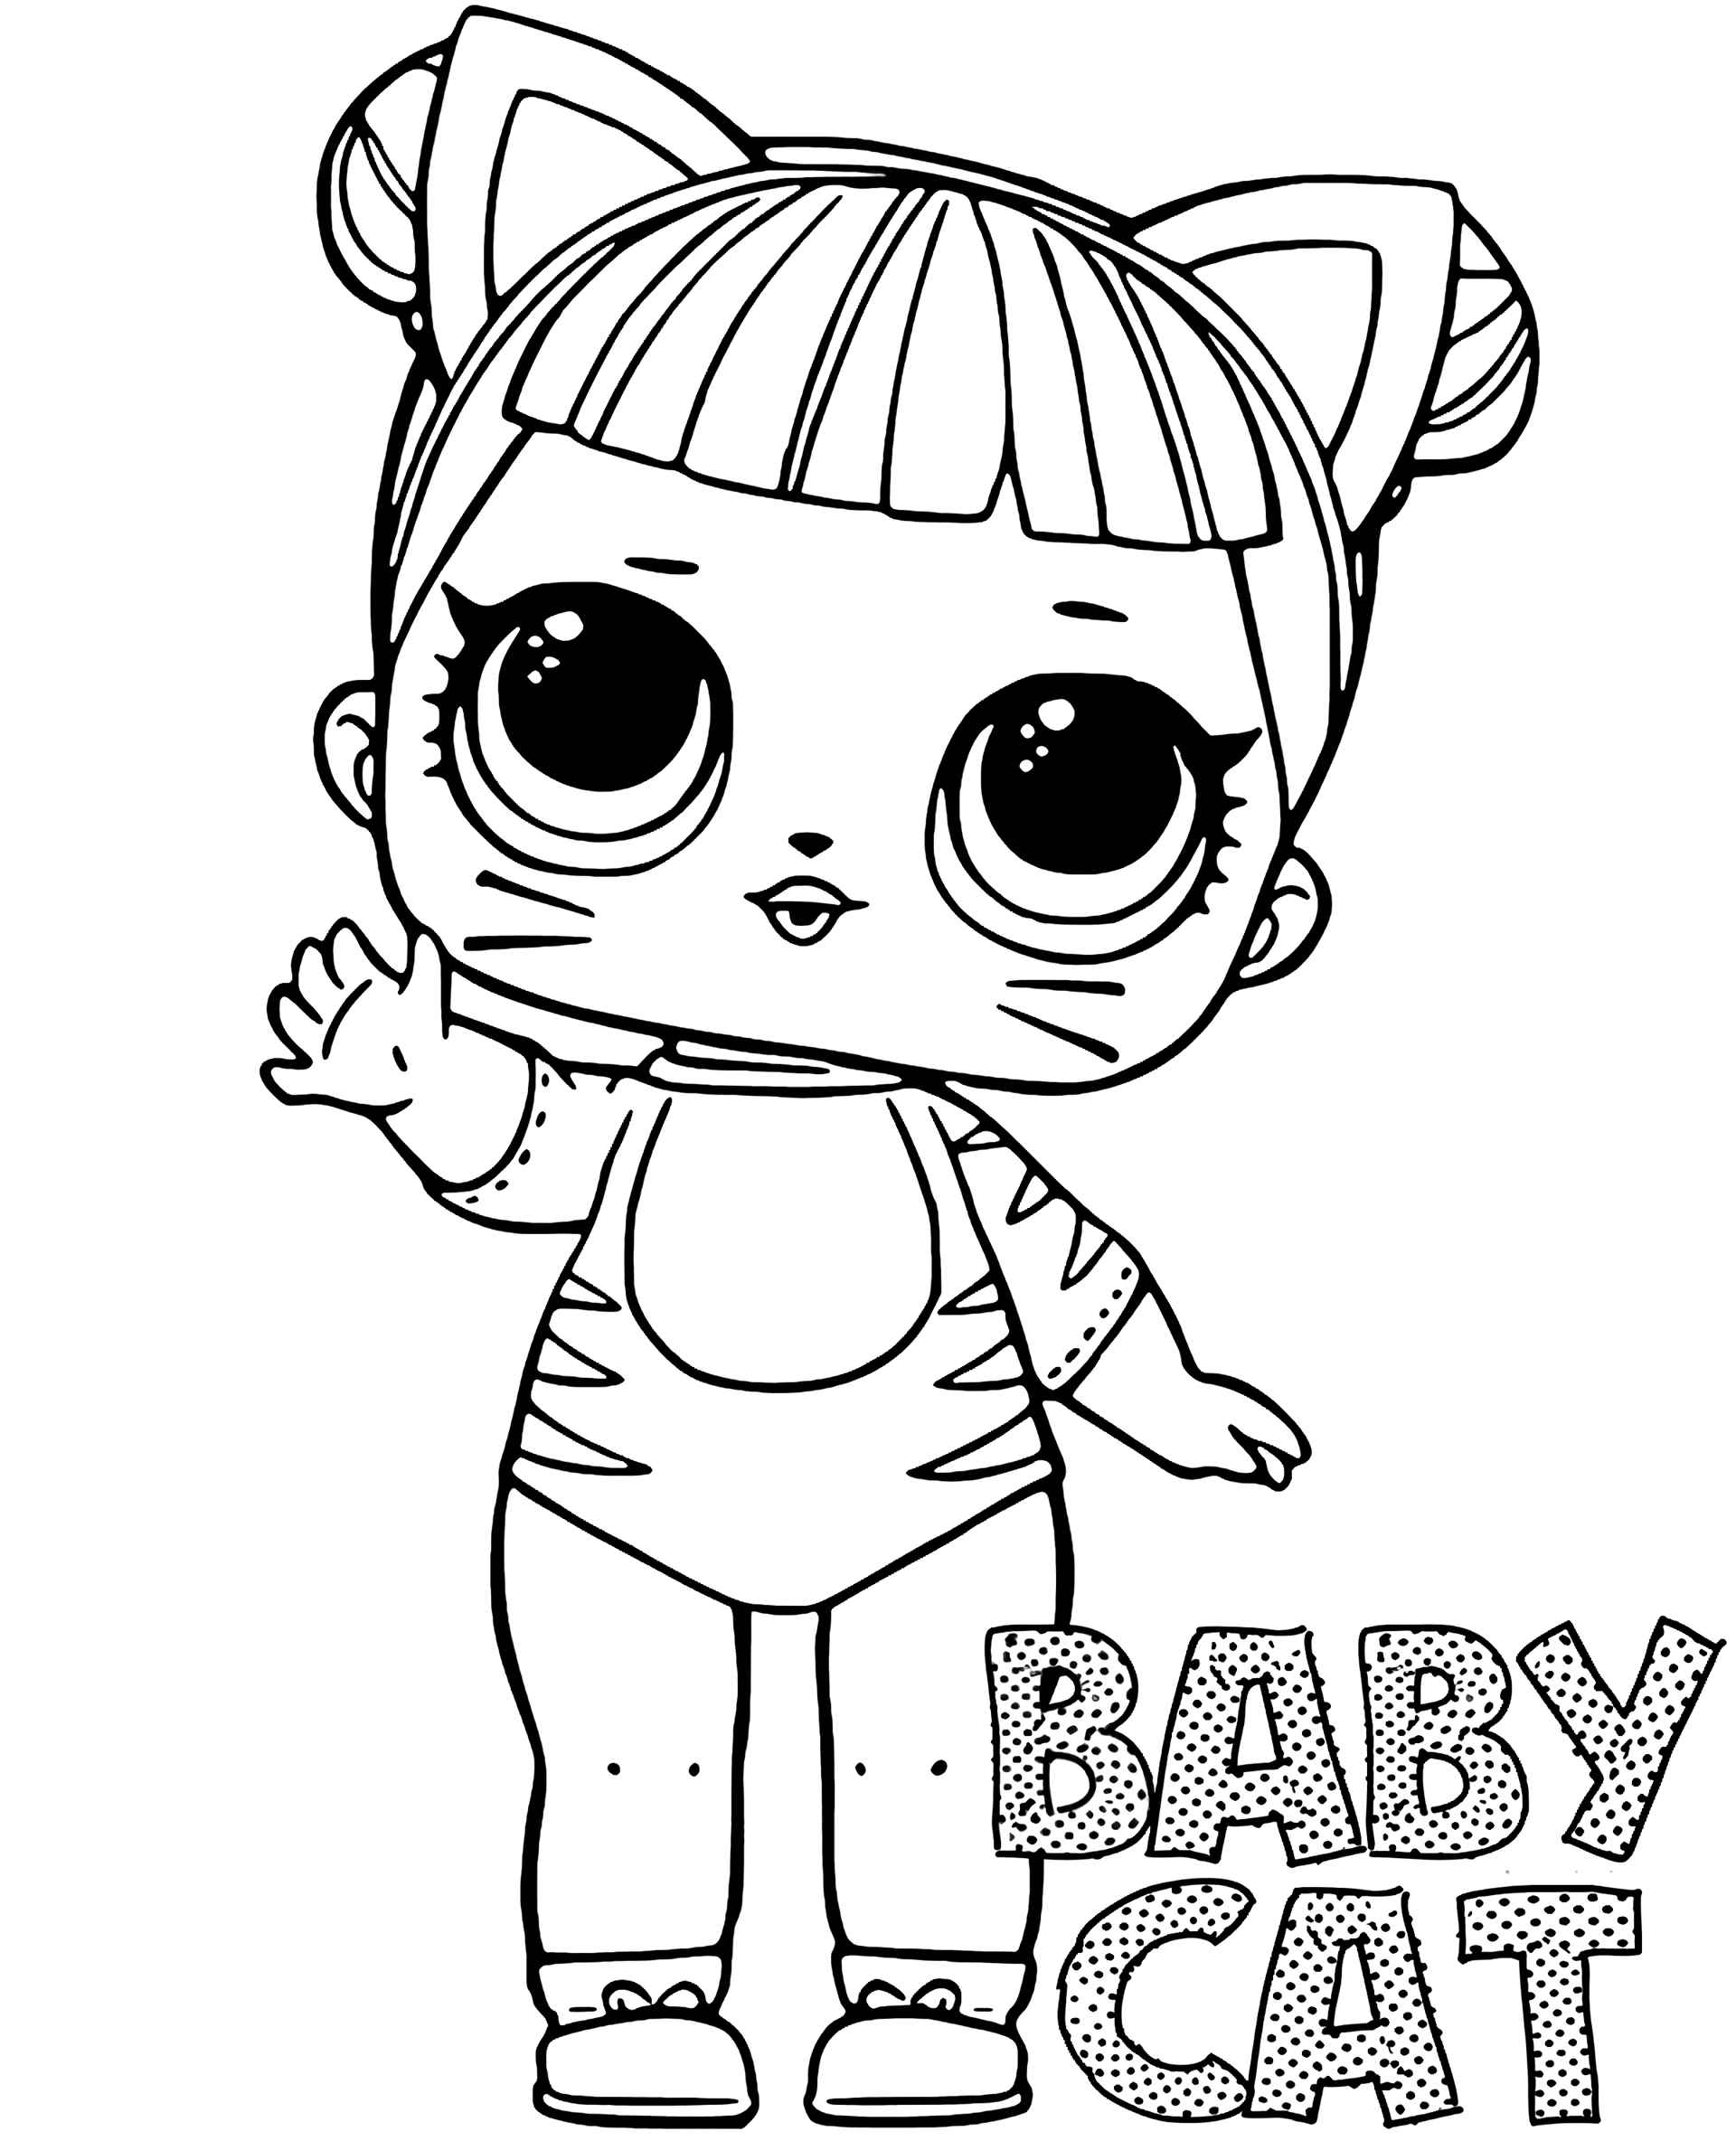 Coloring Sheet Baby Cat Doll From L.O.L. Suprise